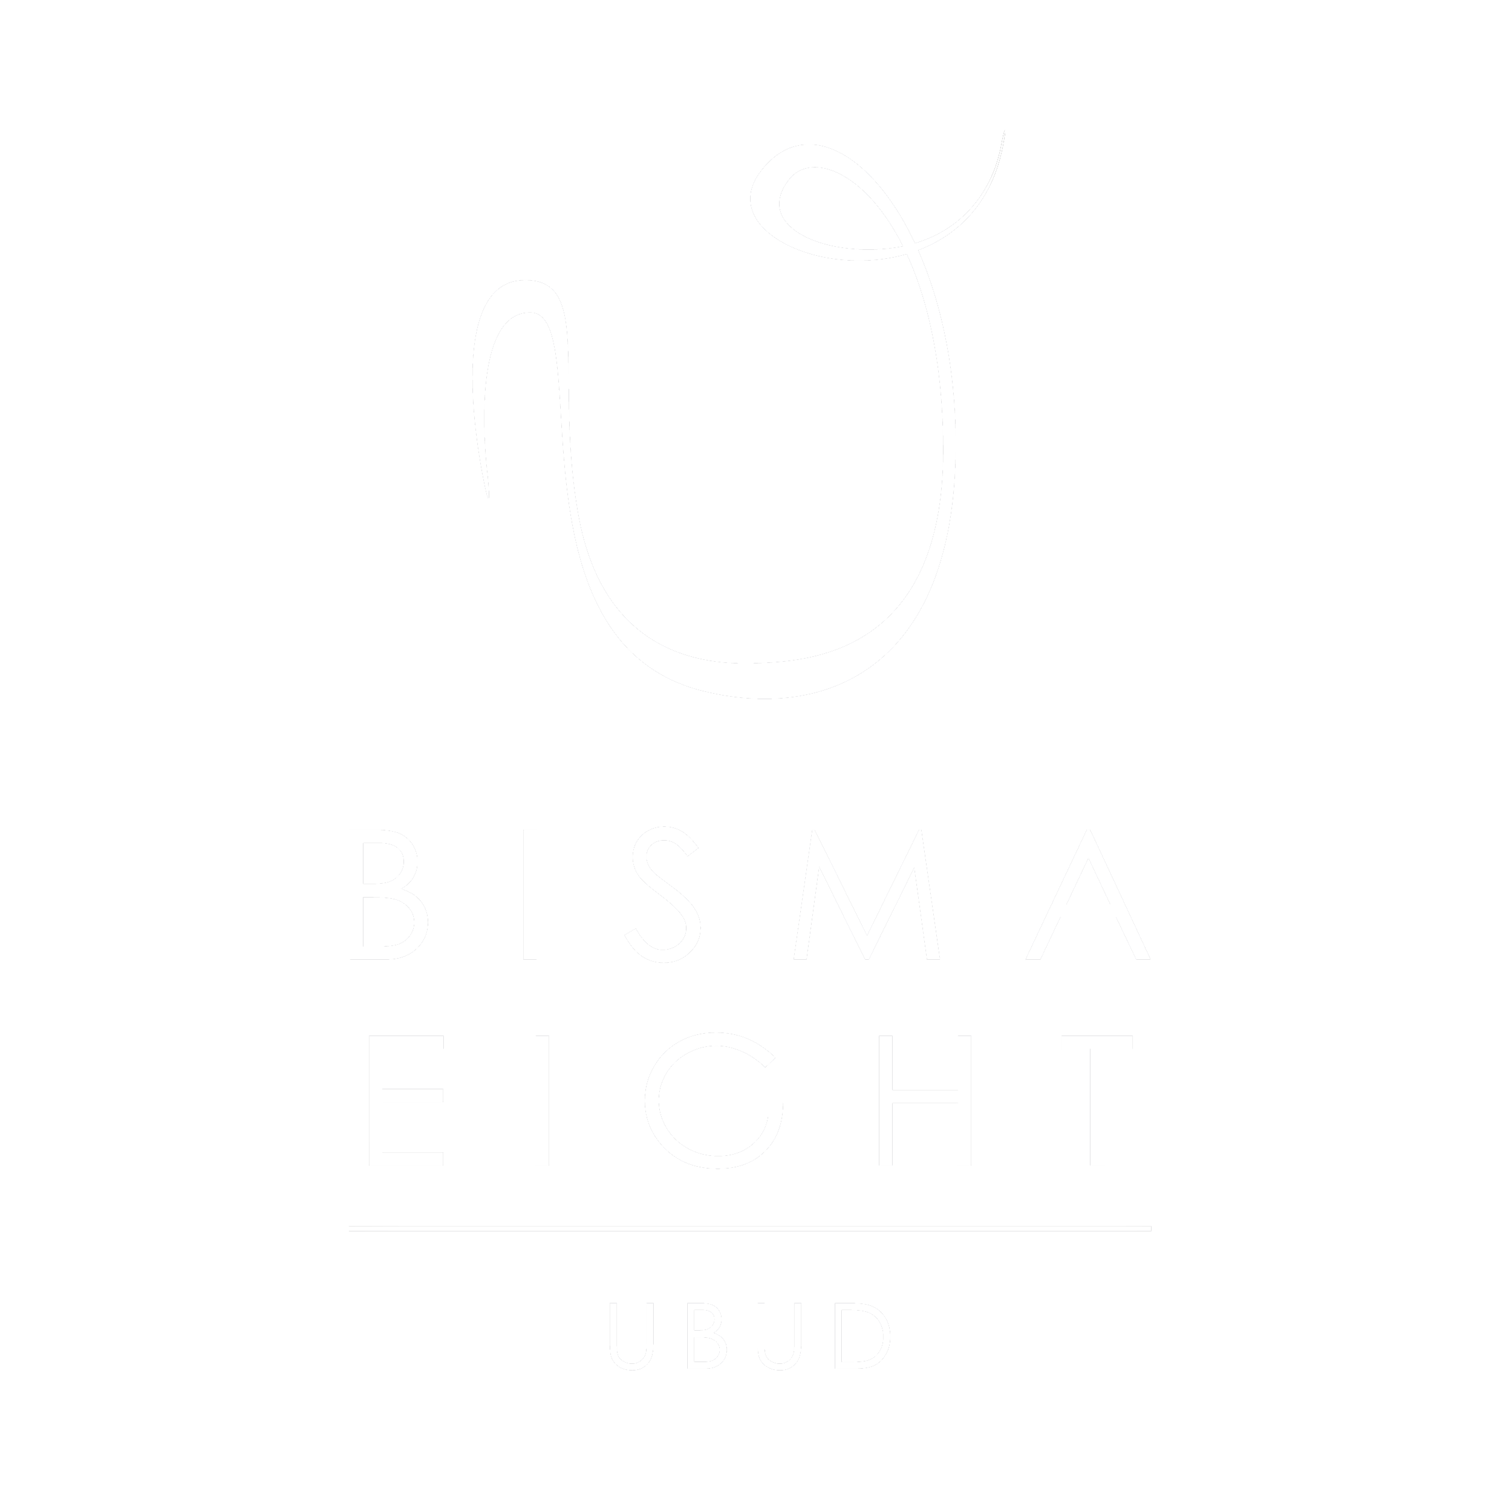 A Luxury Boutique Hotel In Ubud, Bali | Bisma Eight Ubud